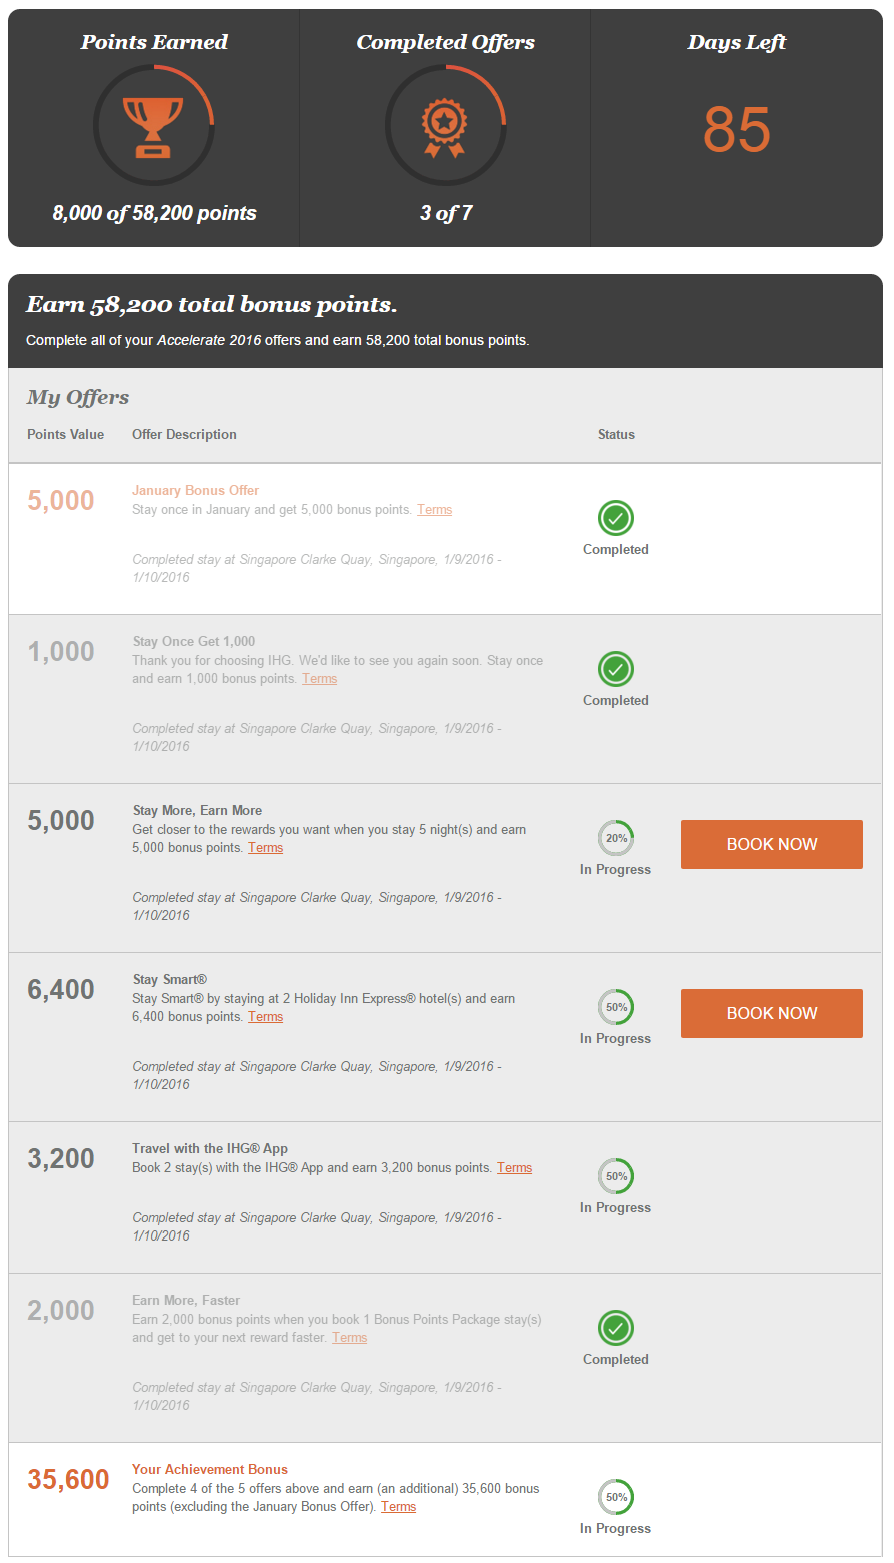 IHG Accelerate 2016 Offers